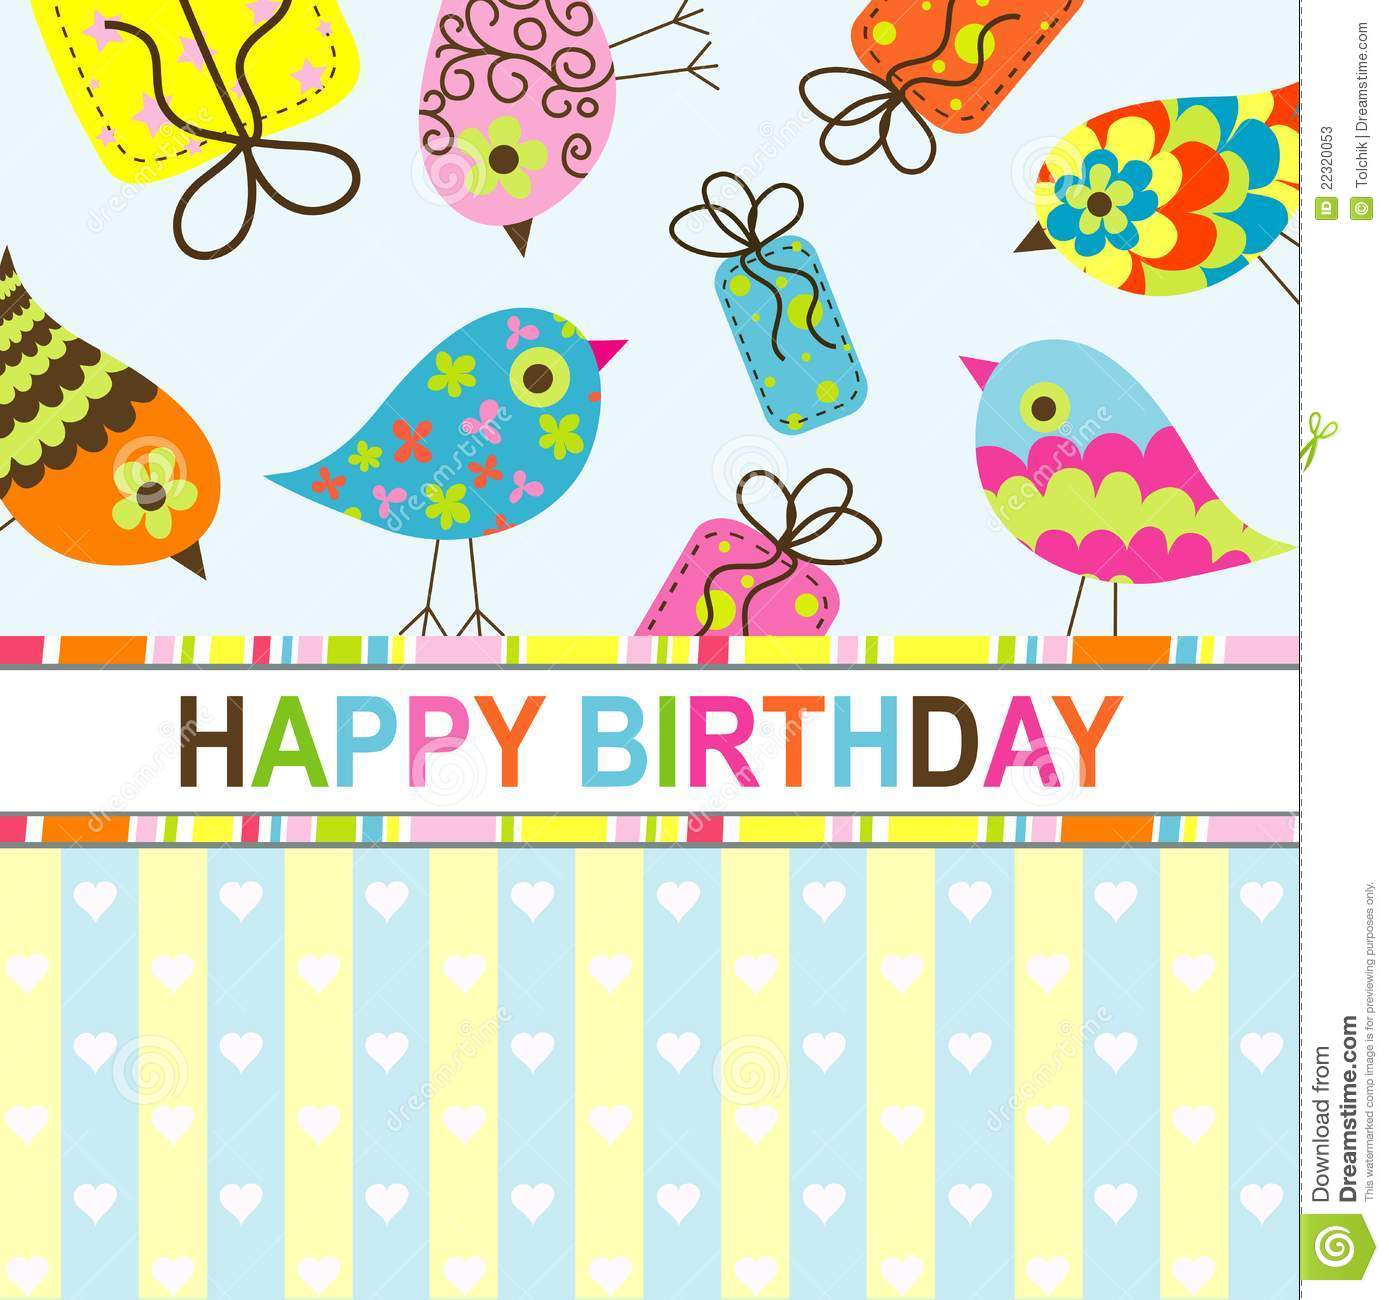 template birthday greeting card stock image  image, Birthday card